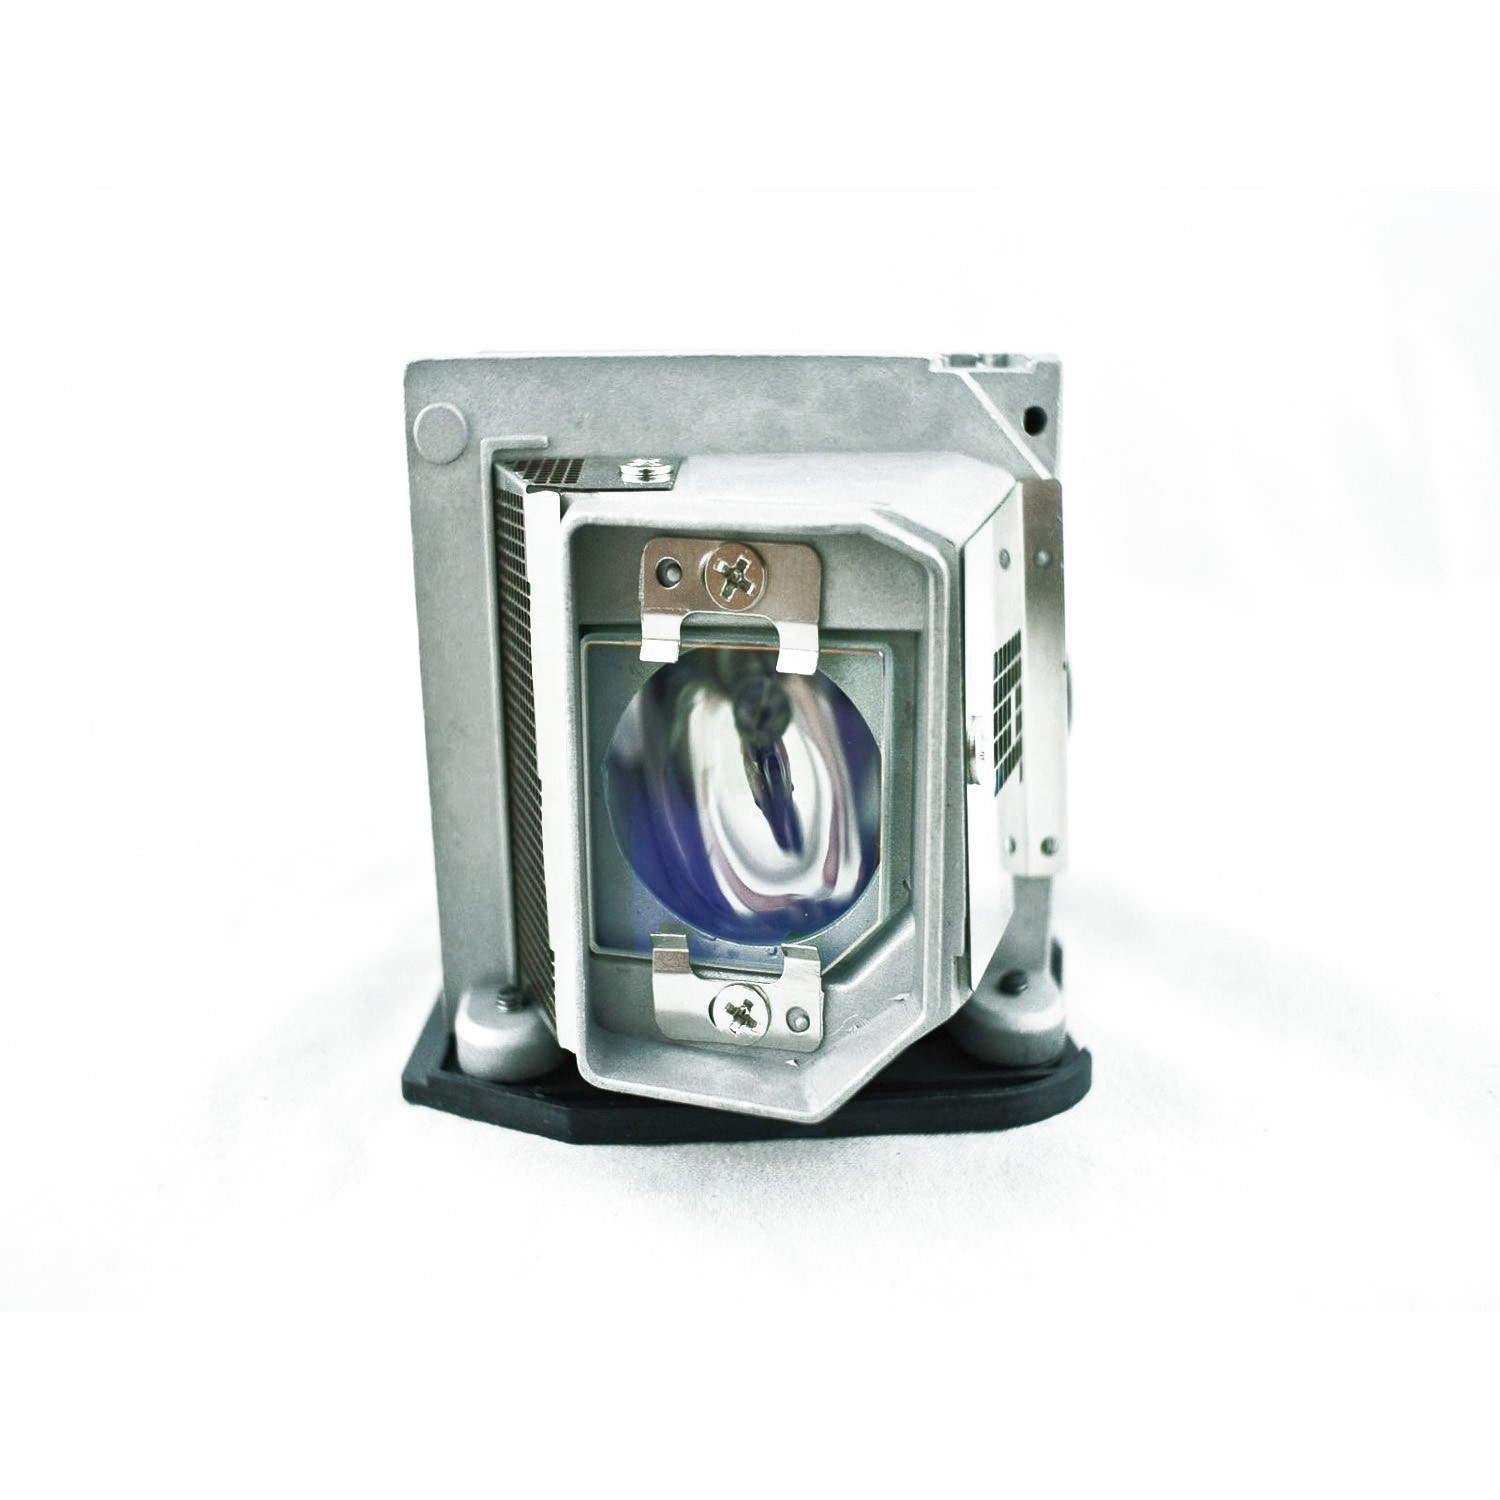 V7 330-6581-V7-1E REPLACEMENT LAMP FOR DELL 330-6581